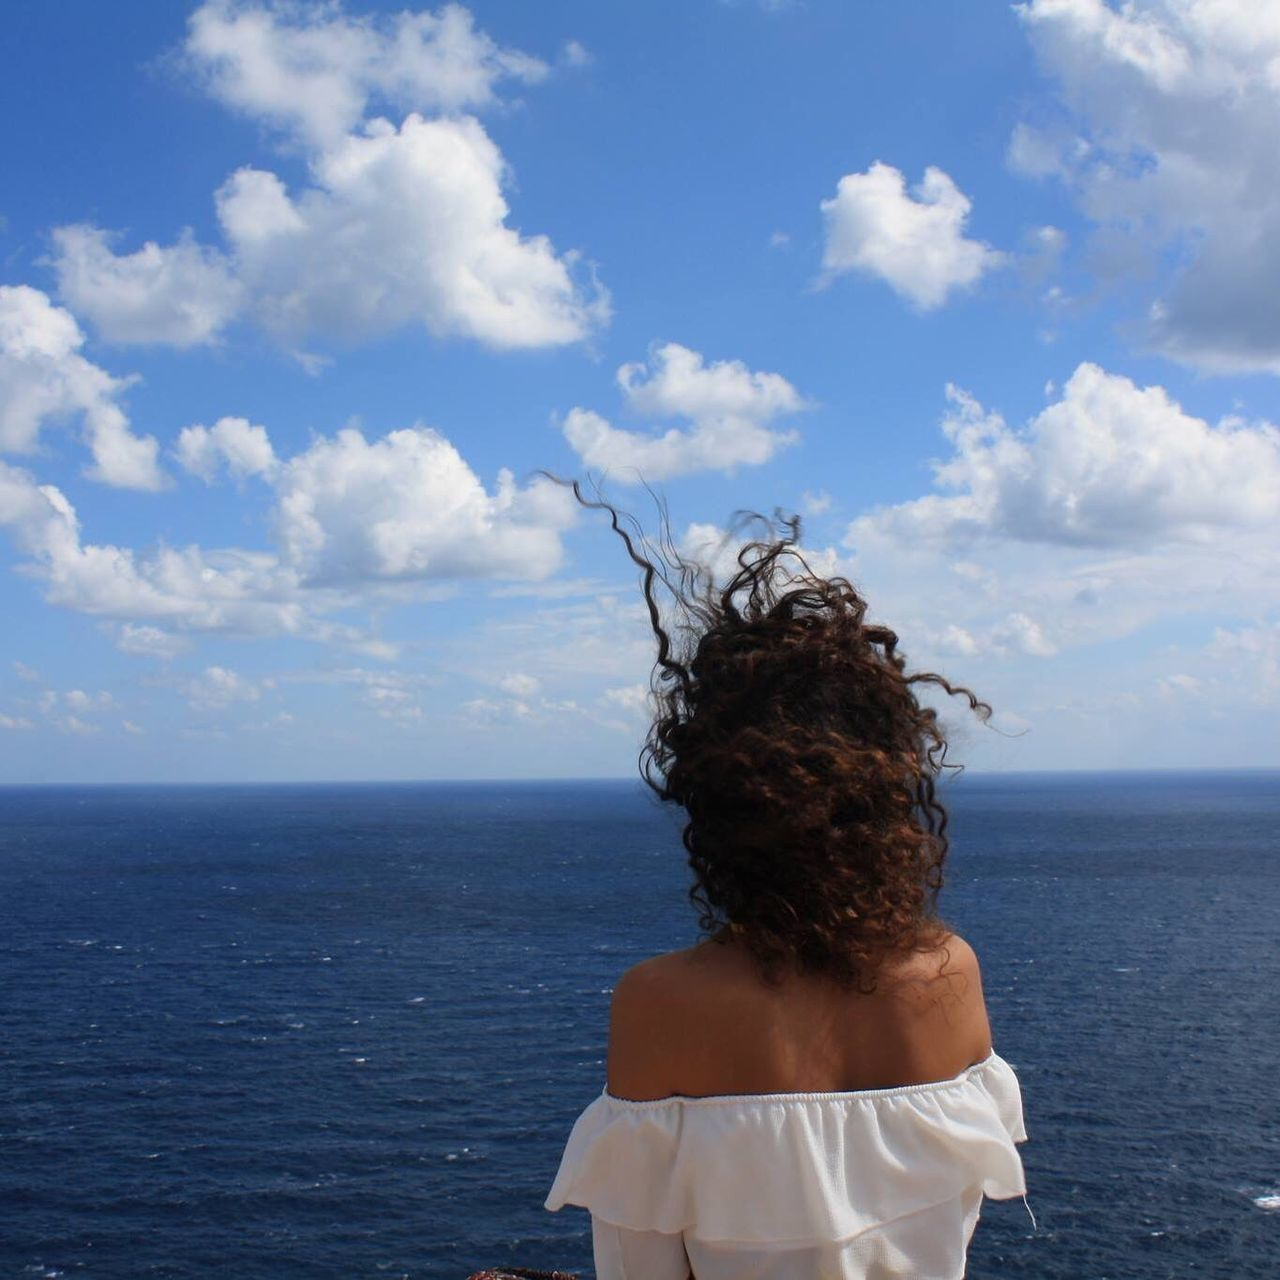 Sea Rear View Horizon Over Water One Person Sky Real People Leisure Activity Water Cloud - Sky Lifestyles Day Standing Outdoors Nature Scenics Tranquility Beauty In Nature Women Young Adult People Formentera Formentera Island Baleares Balearic Islands